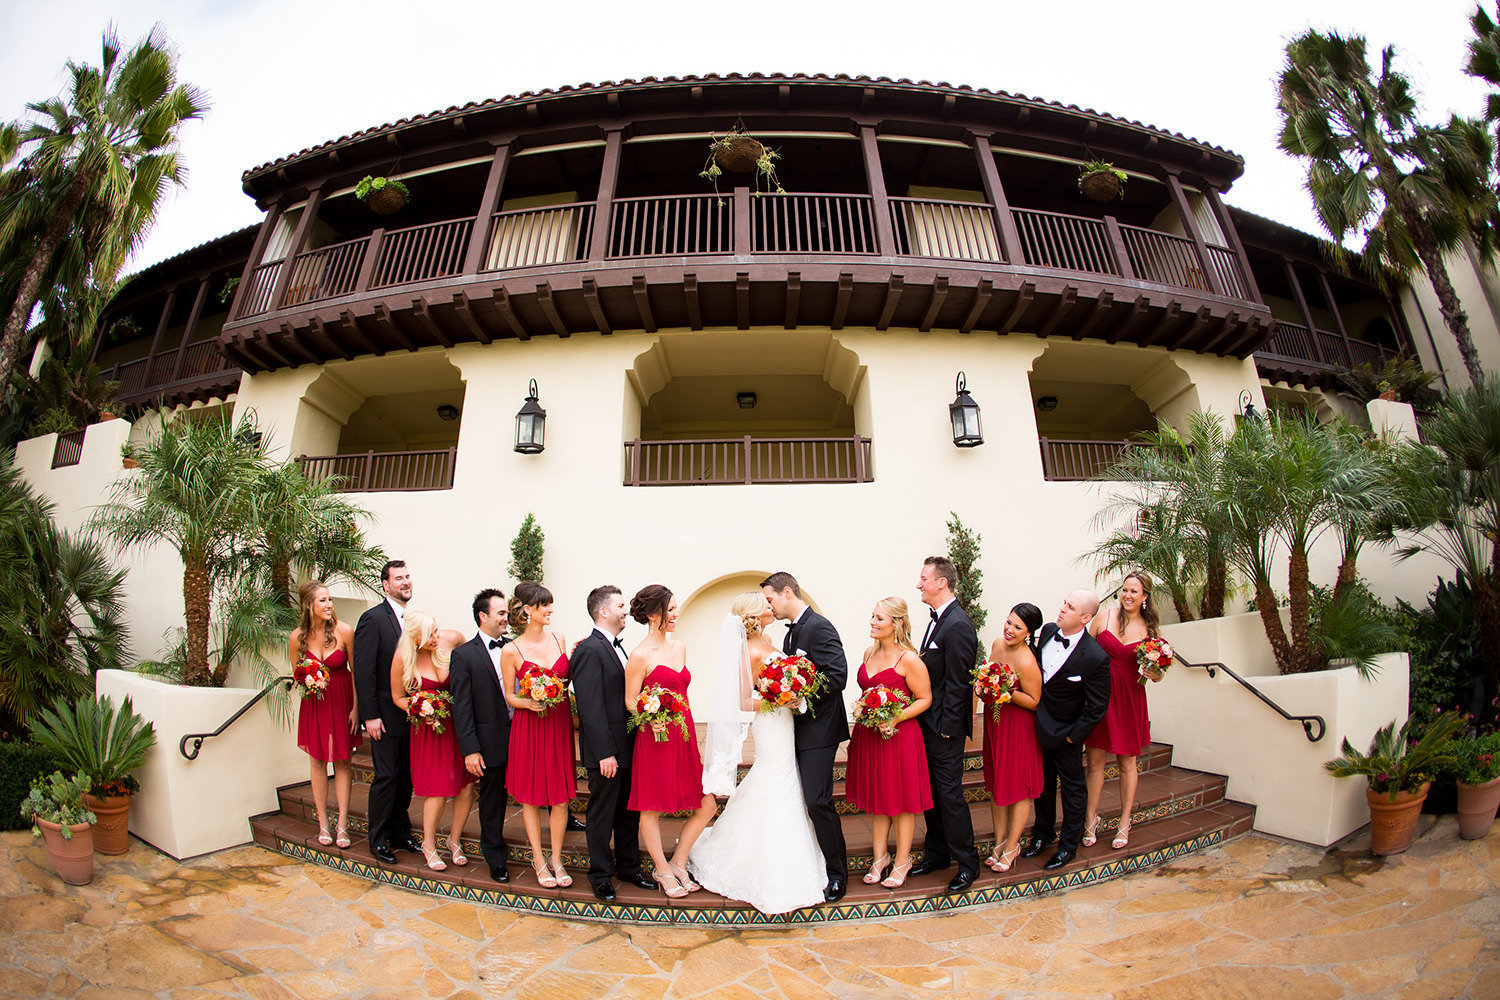 Fish eye photo of the wedding party at Estancia in La Jolla